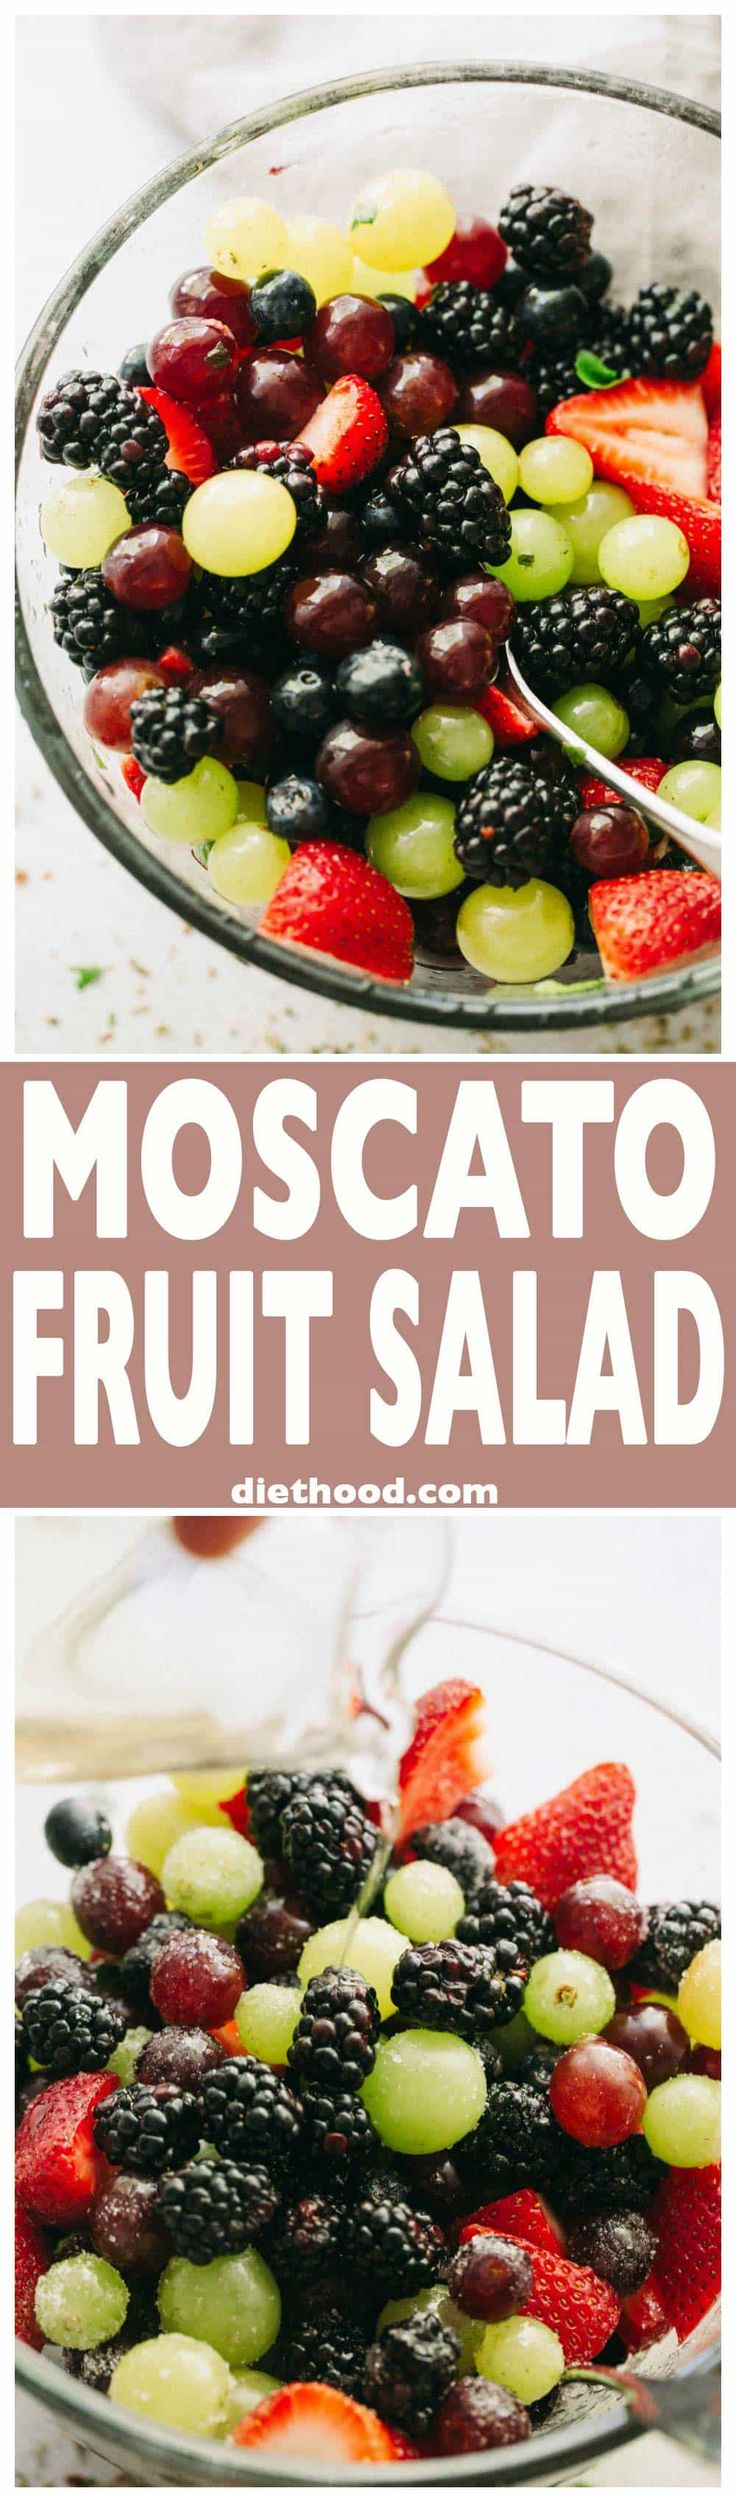 Moscato Fruit Salad - Prepared with colorful grapes and berries, this light, boozy, and delicious fresh fruit salad makes the perfect accompaniment to your summer nights!